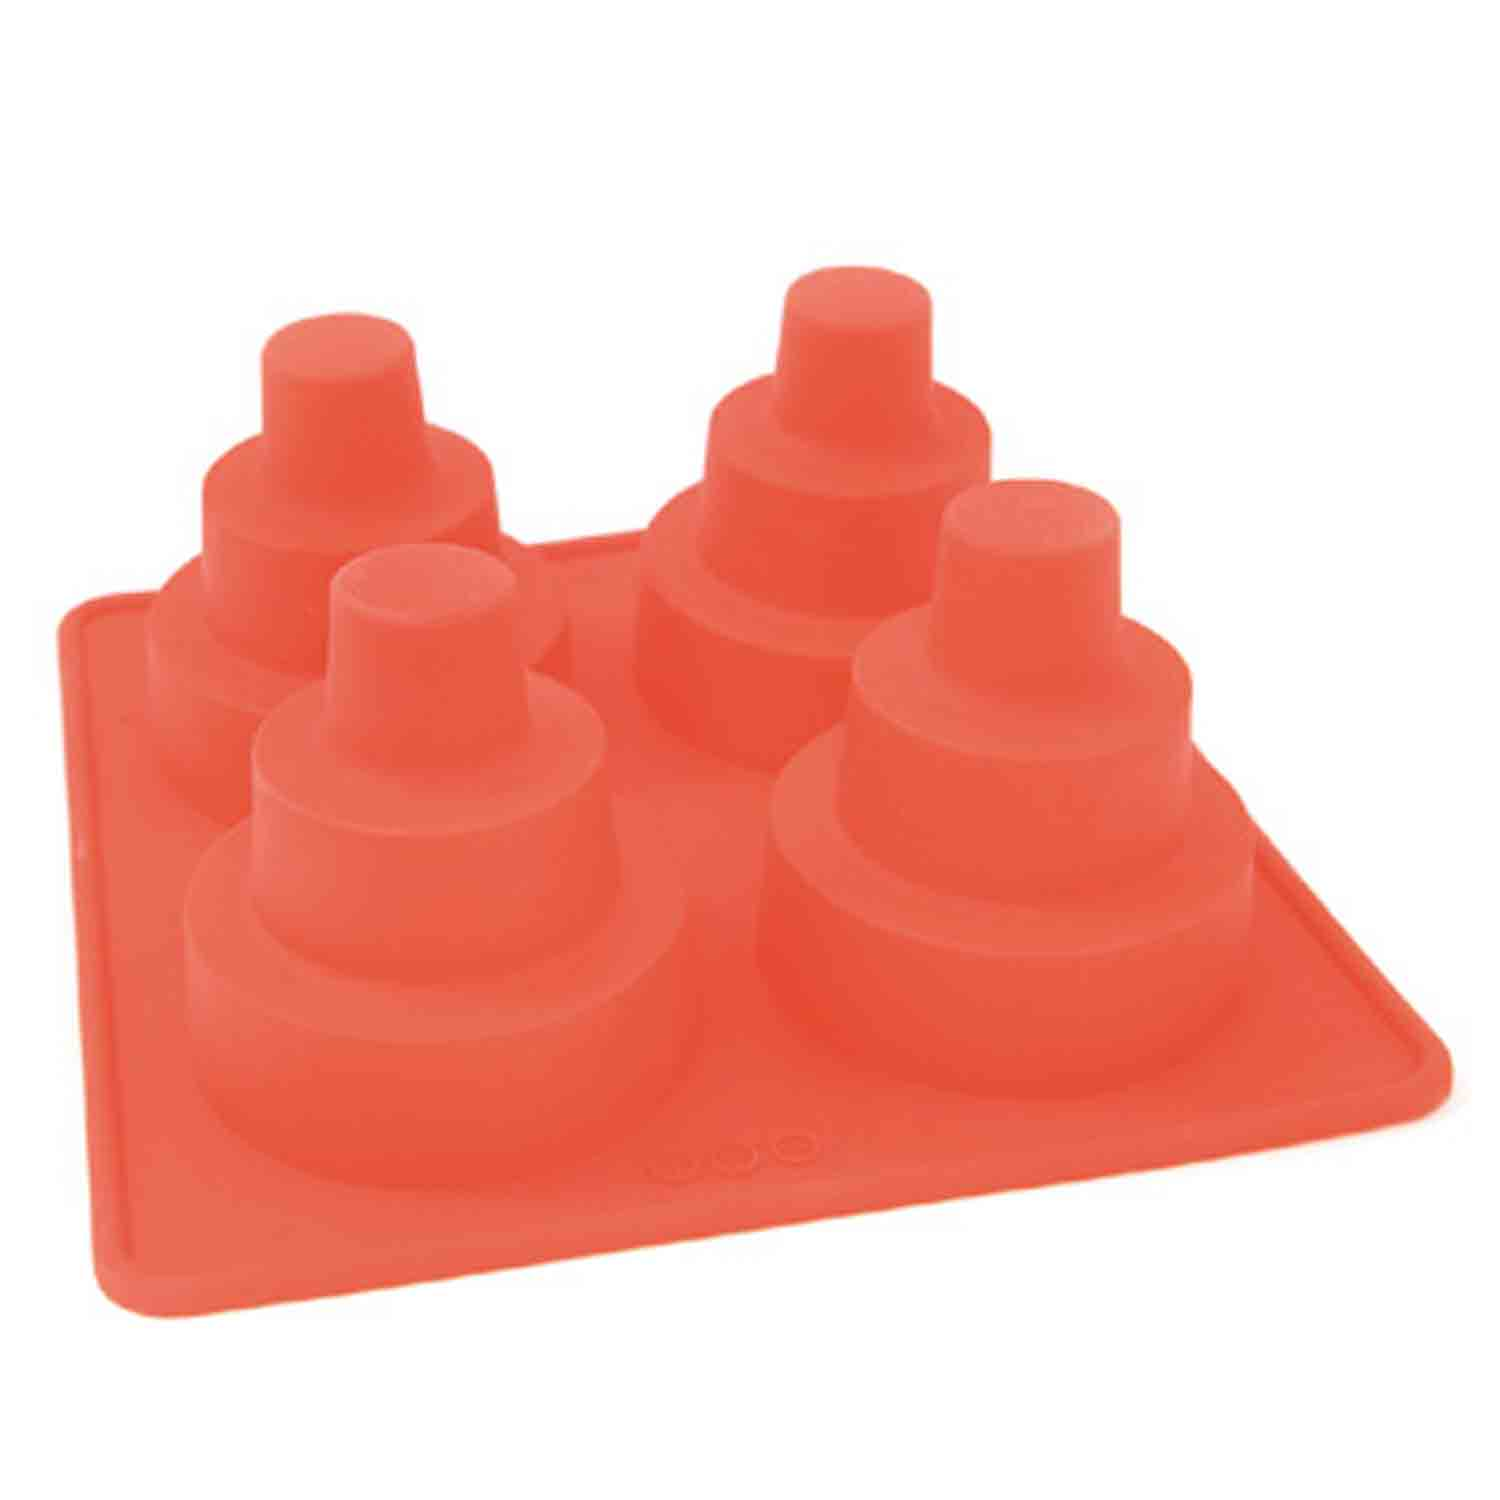 Silicone 3 Tier Mini Wedding Cake Pan